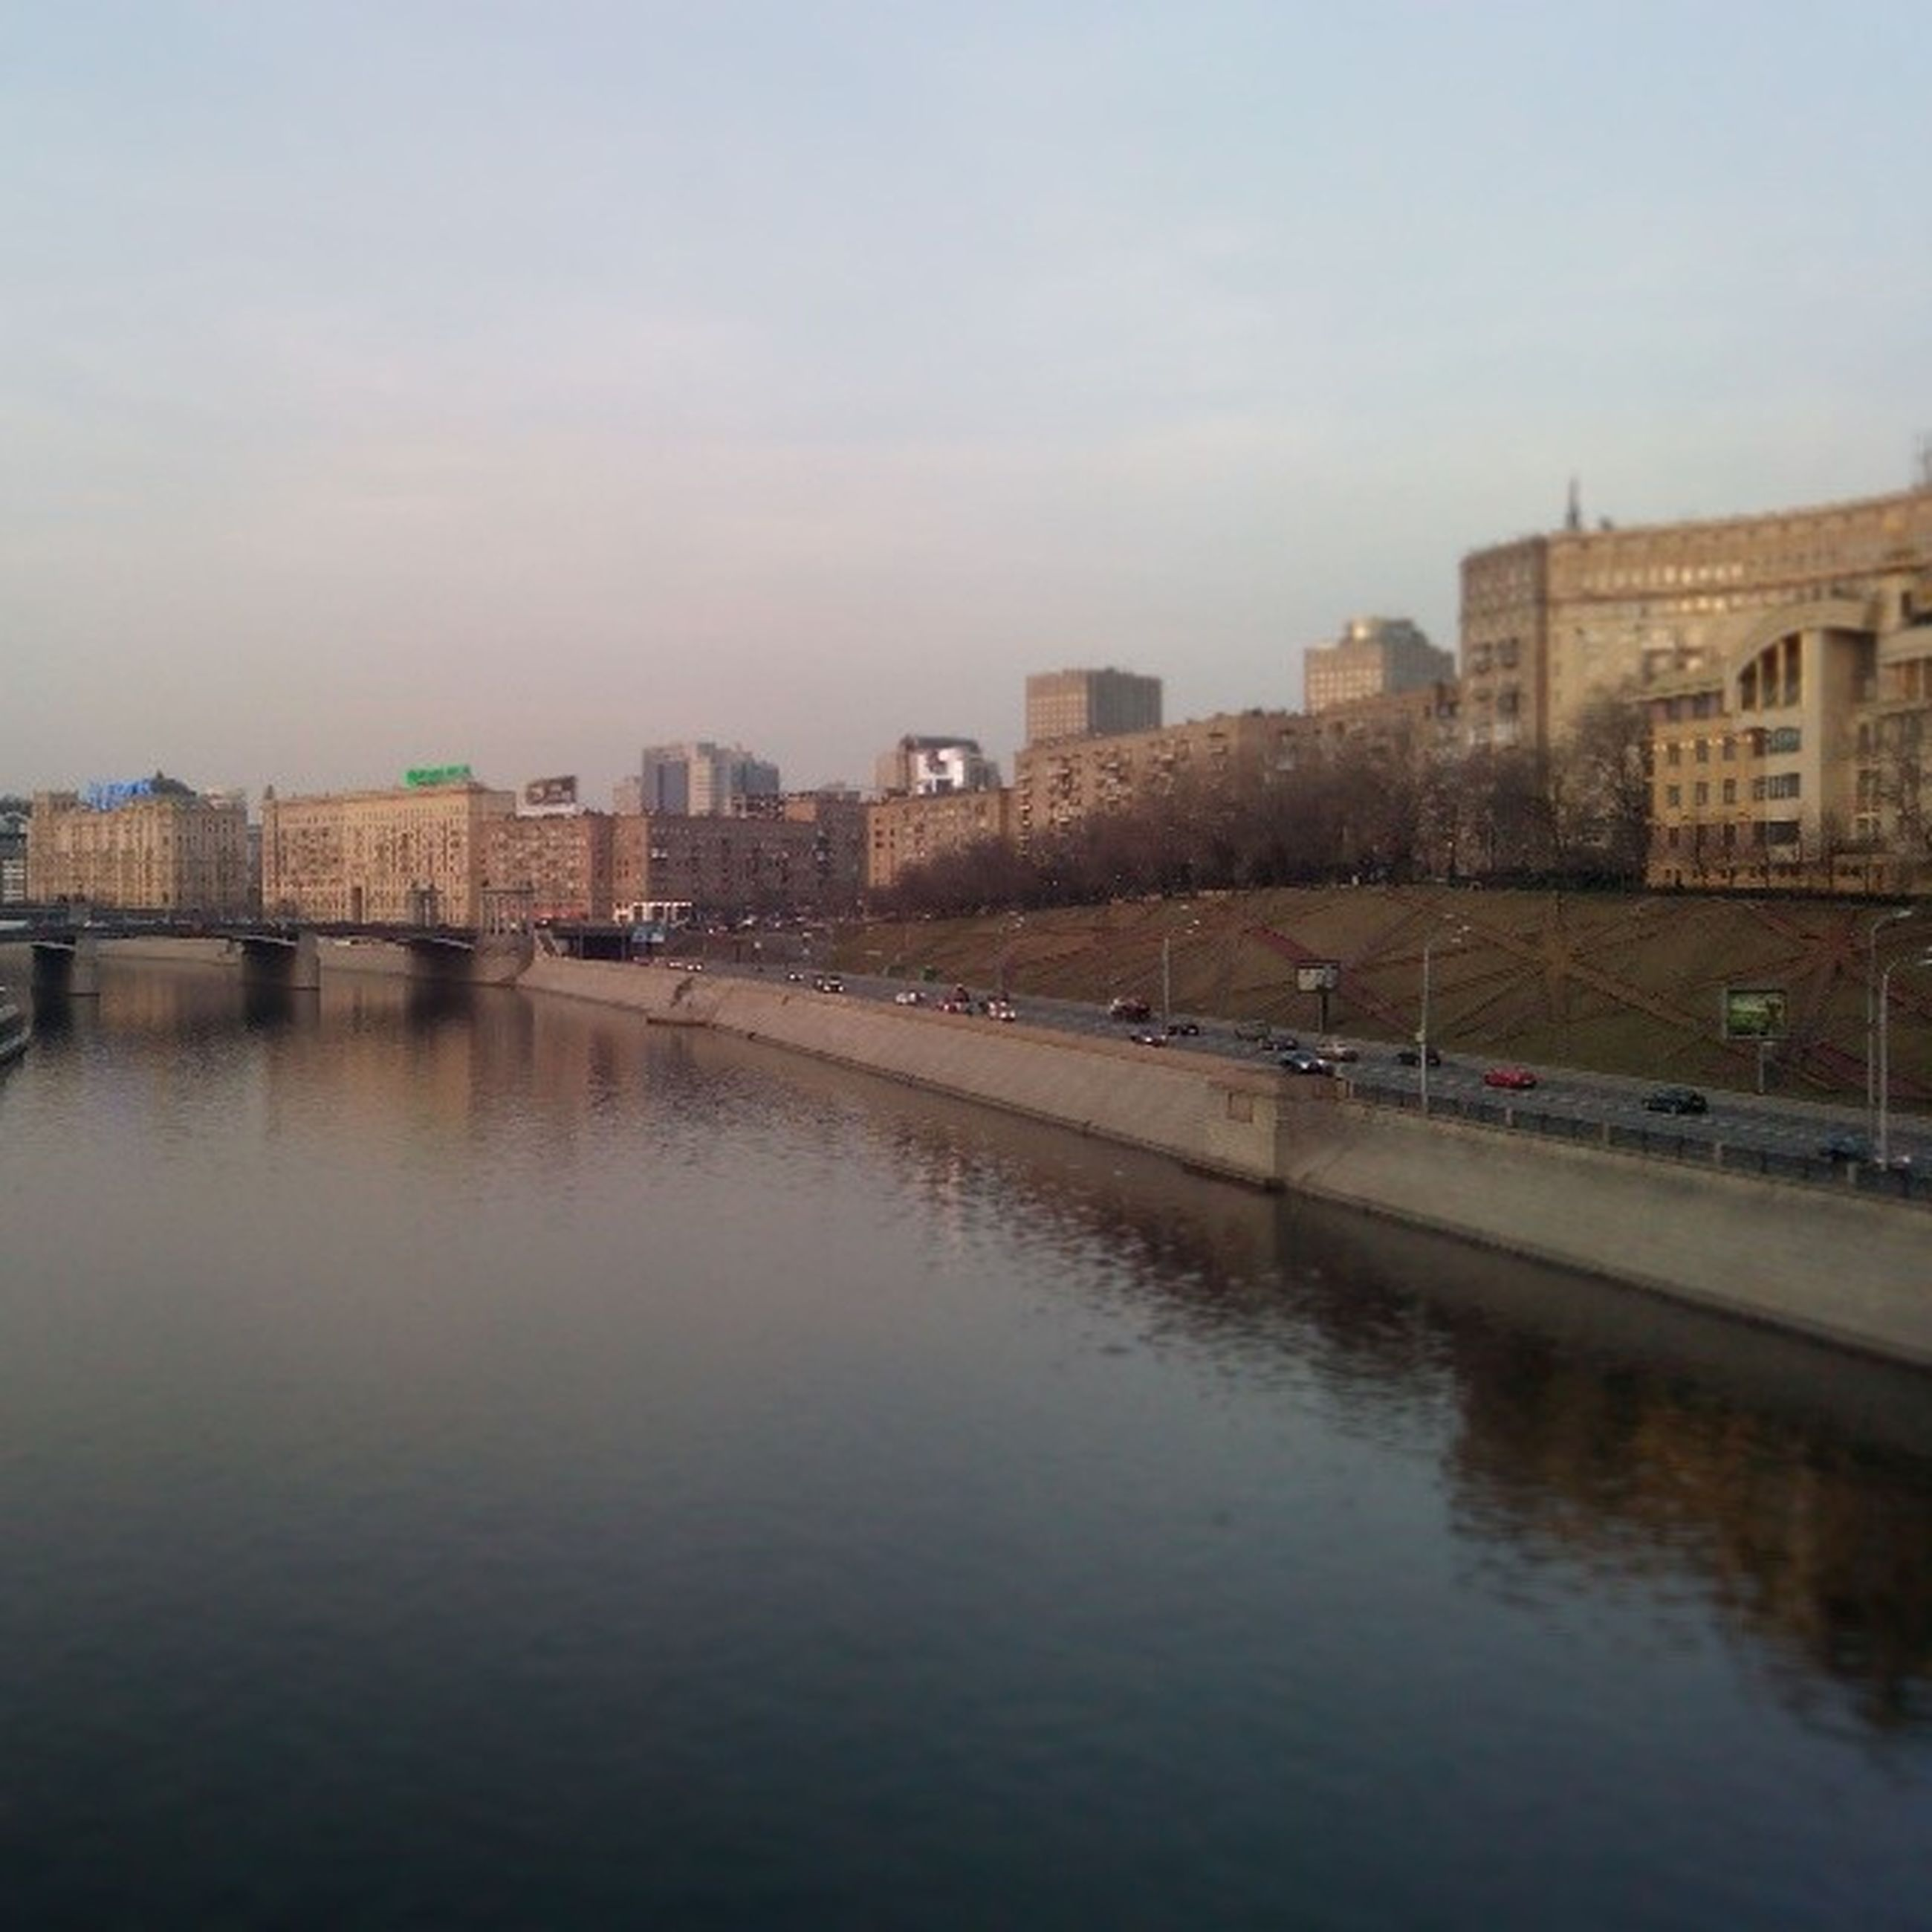 architecture, building exterior, built structure, water, waterfront, city, river, sky, canal, cityscape, building, bridge - man made structure, residential building, connection, residential structure, reflection, transportation, day, city life, outdoors